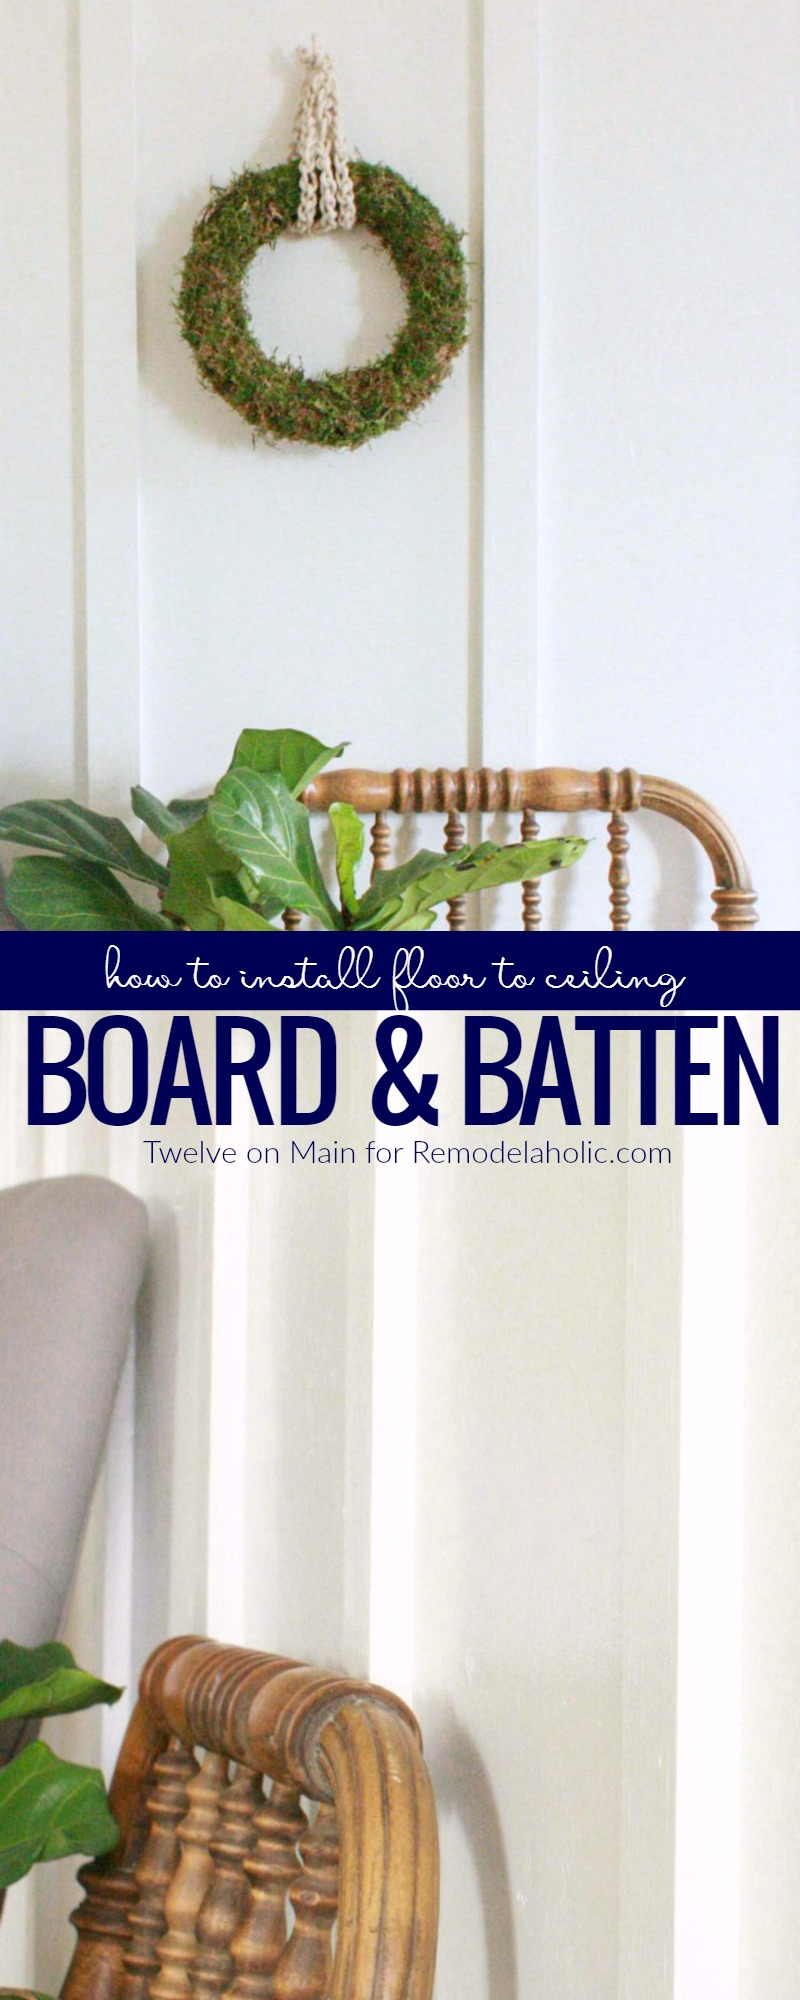 Lighting Basement Washroom Stairs: How To DIY Floor To Ceiling Board And Batten